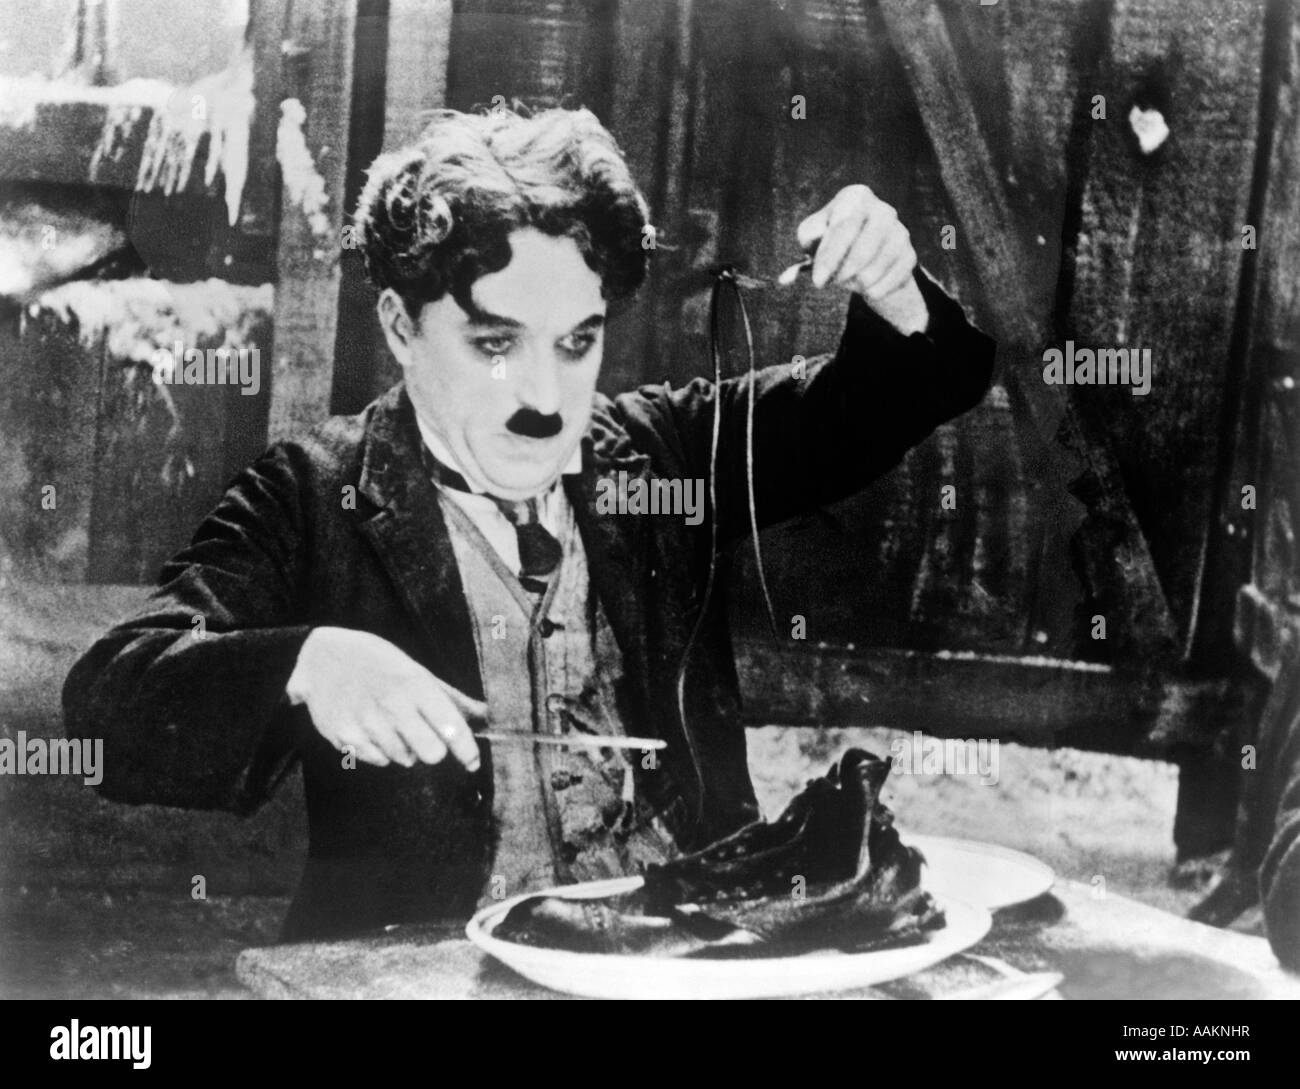 1920s CHARLES CHAPLIN EATING SHOE IN SCENE FROM 1925 FILM THE GOLD RUSH - Stock Image